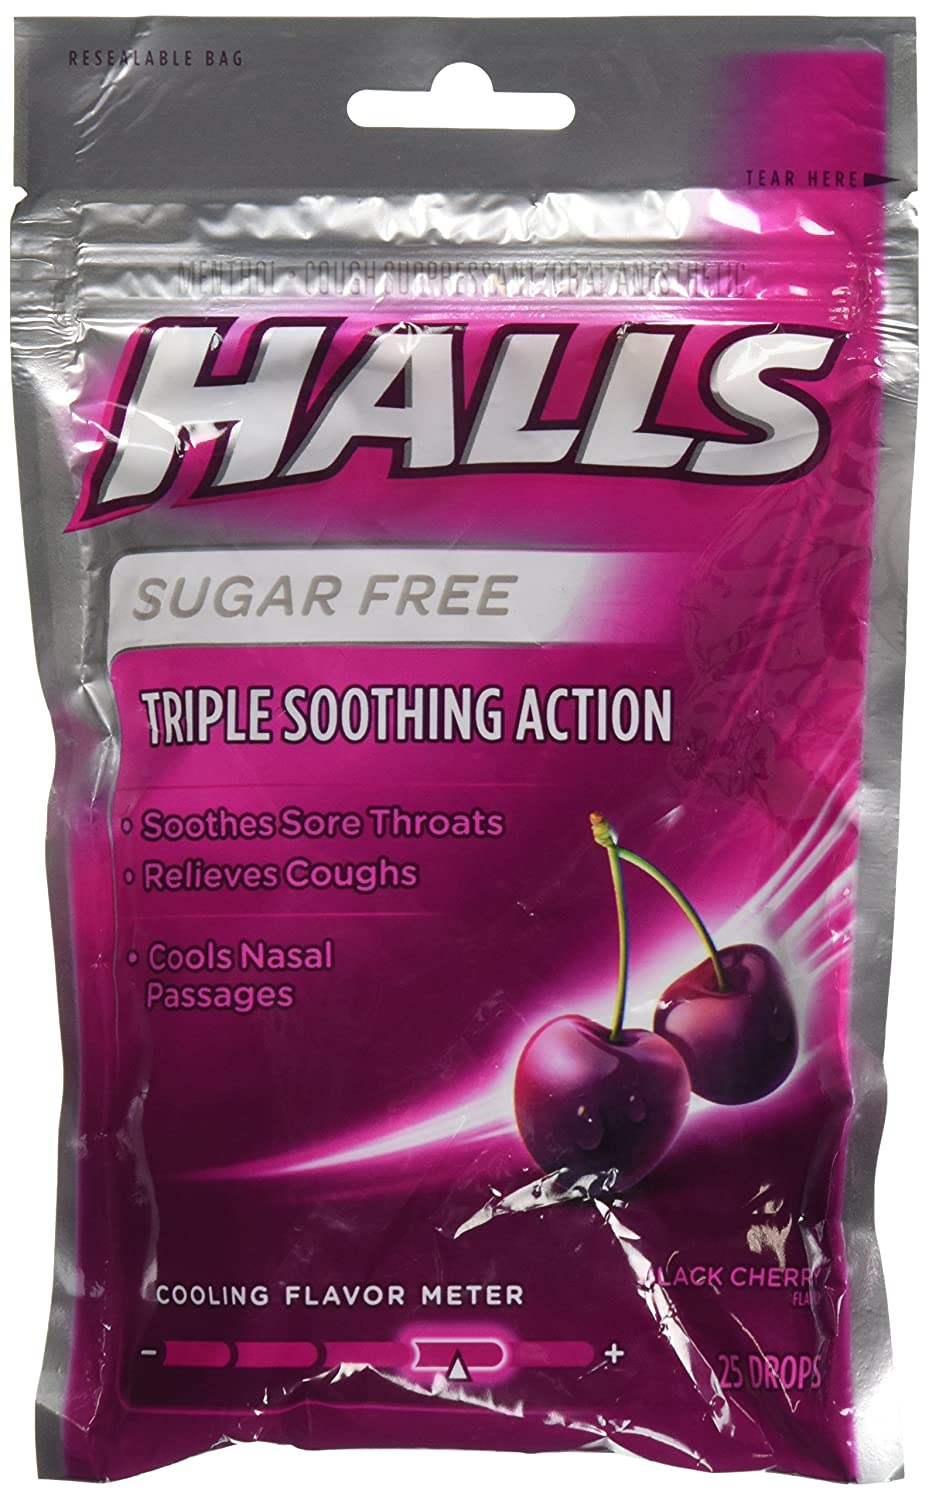 Halls Cos5 Sugar Free Black Cherry Flavor of Triple Soothing Action Fast Relief Cough Suppressant - 3 Bags of 25 Cough Drops (75 Drops Total)